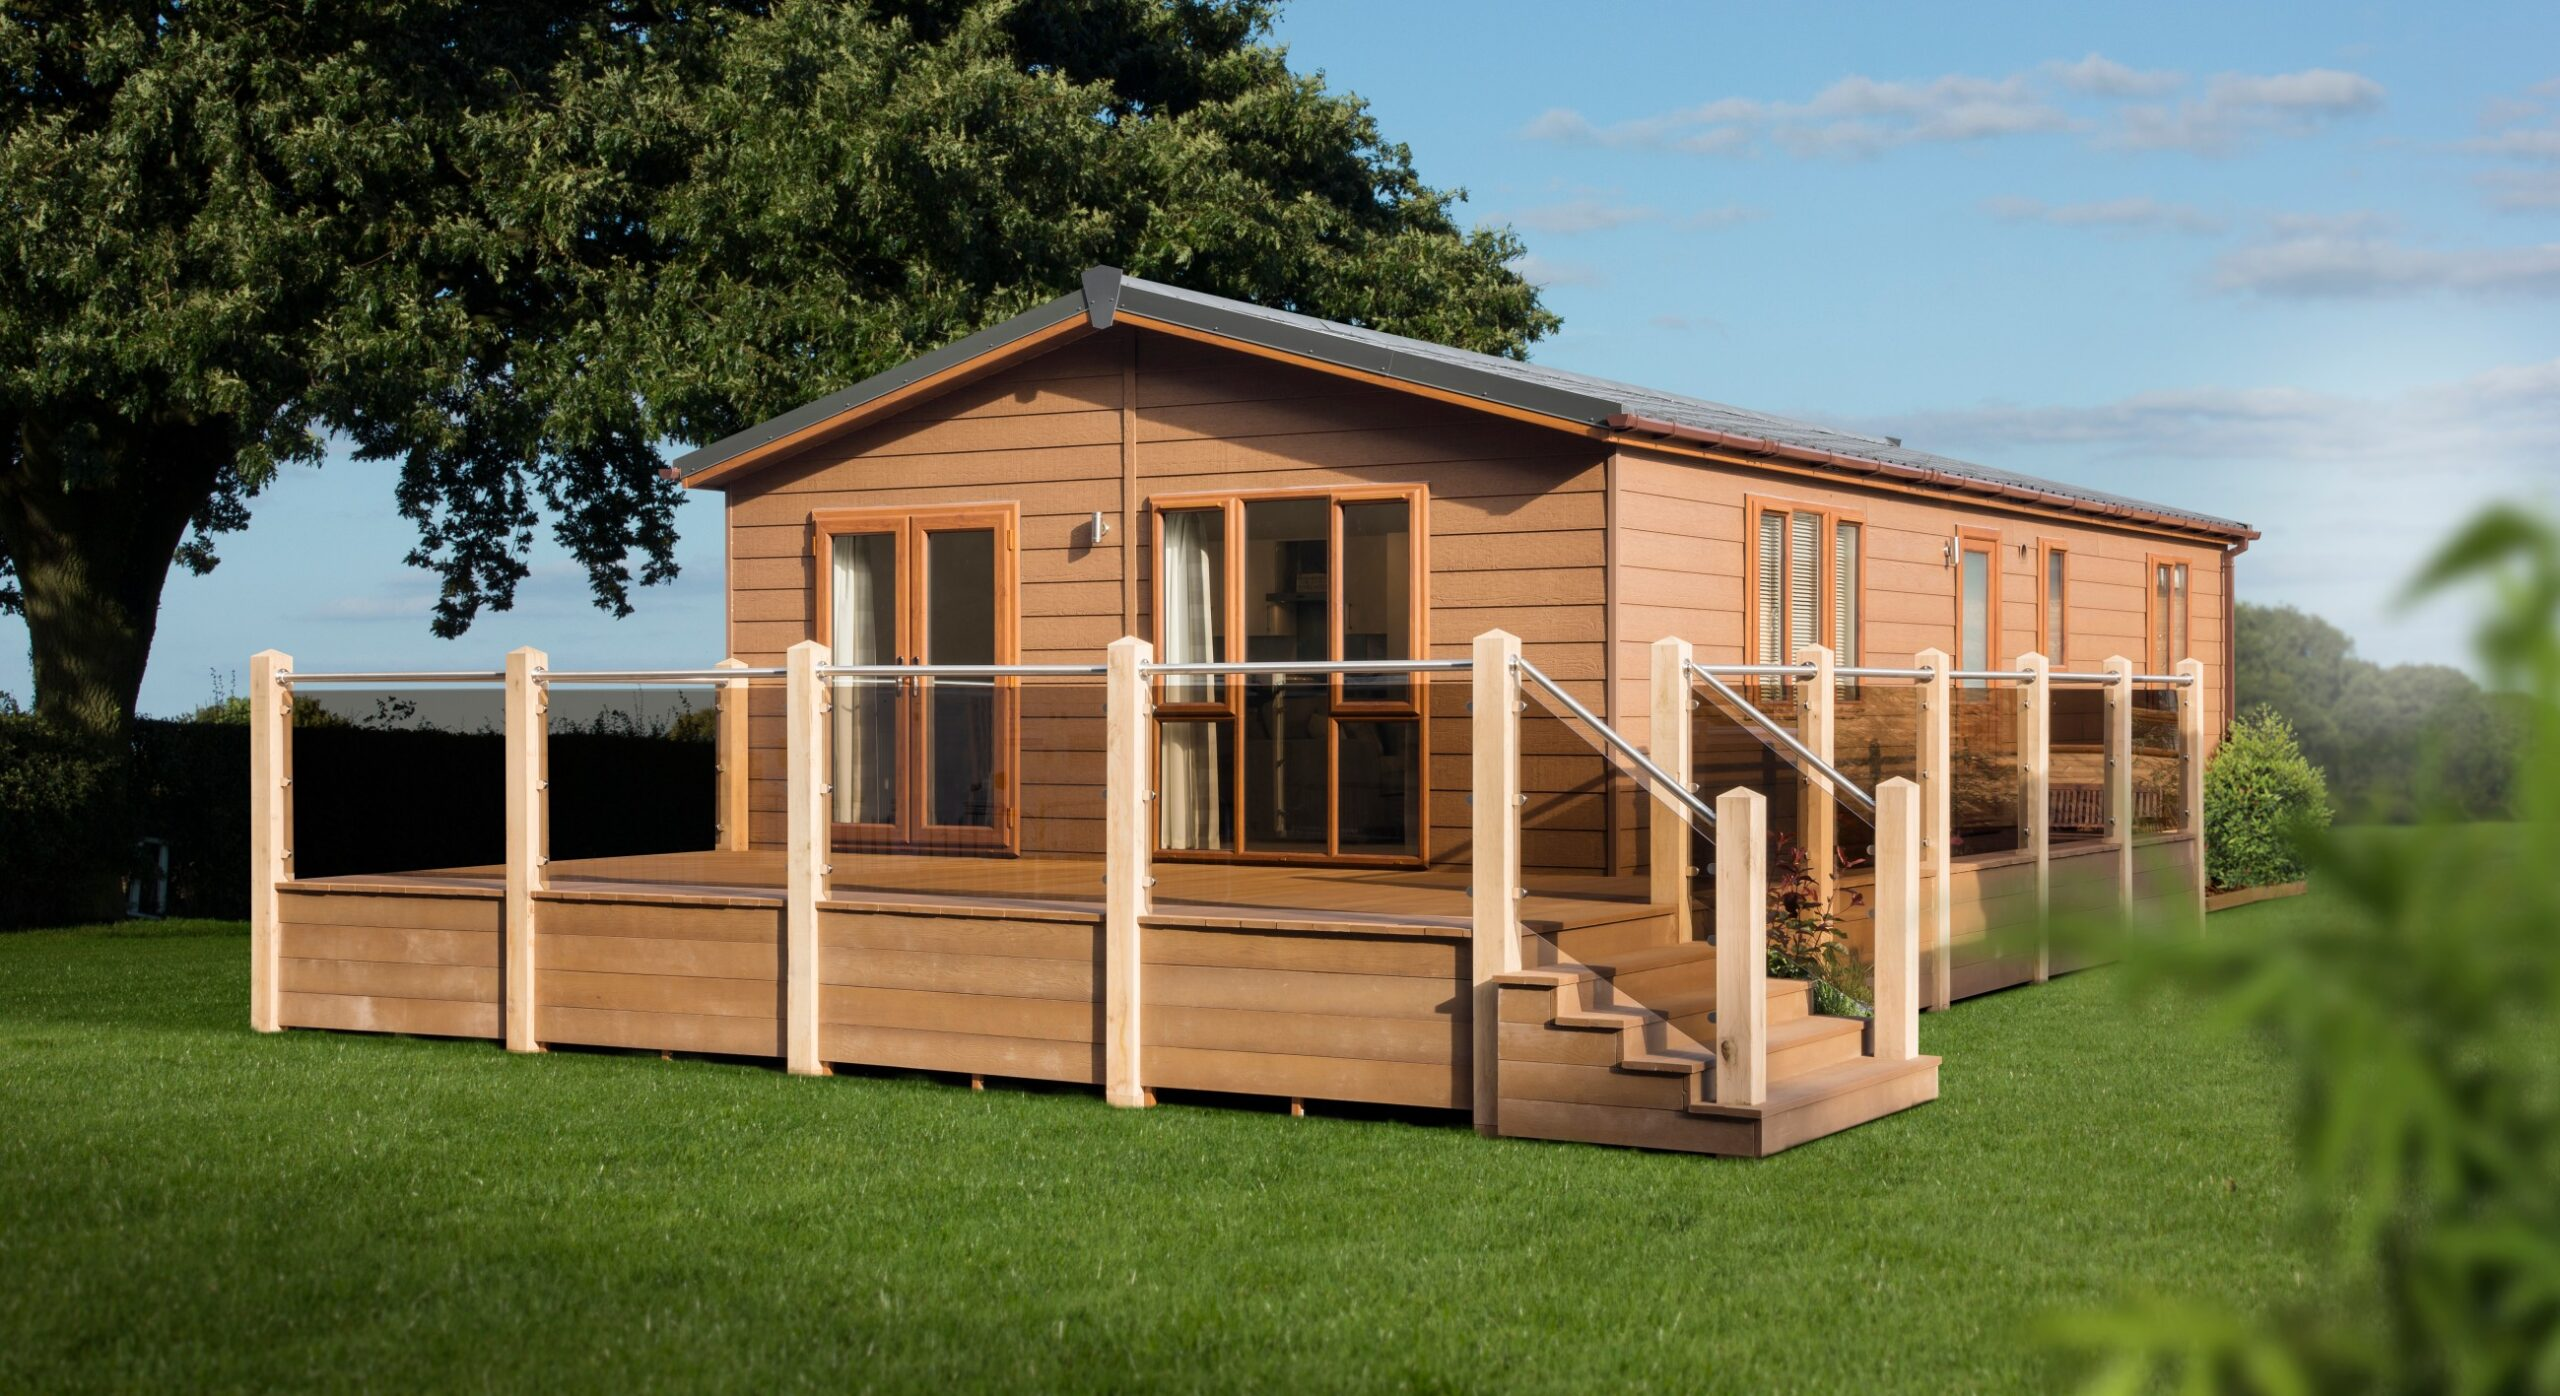 sovereign modular buildings - verity park home and holiday lodge exterior photo